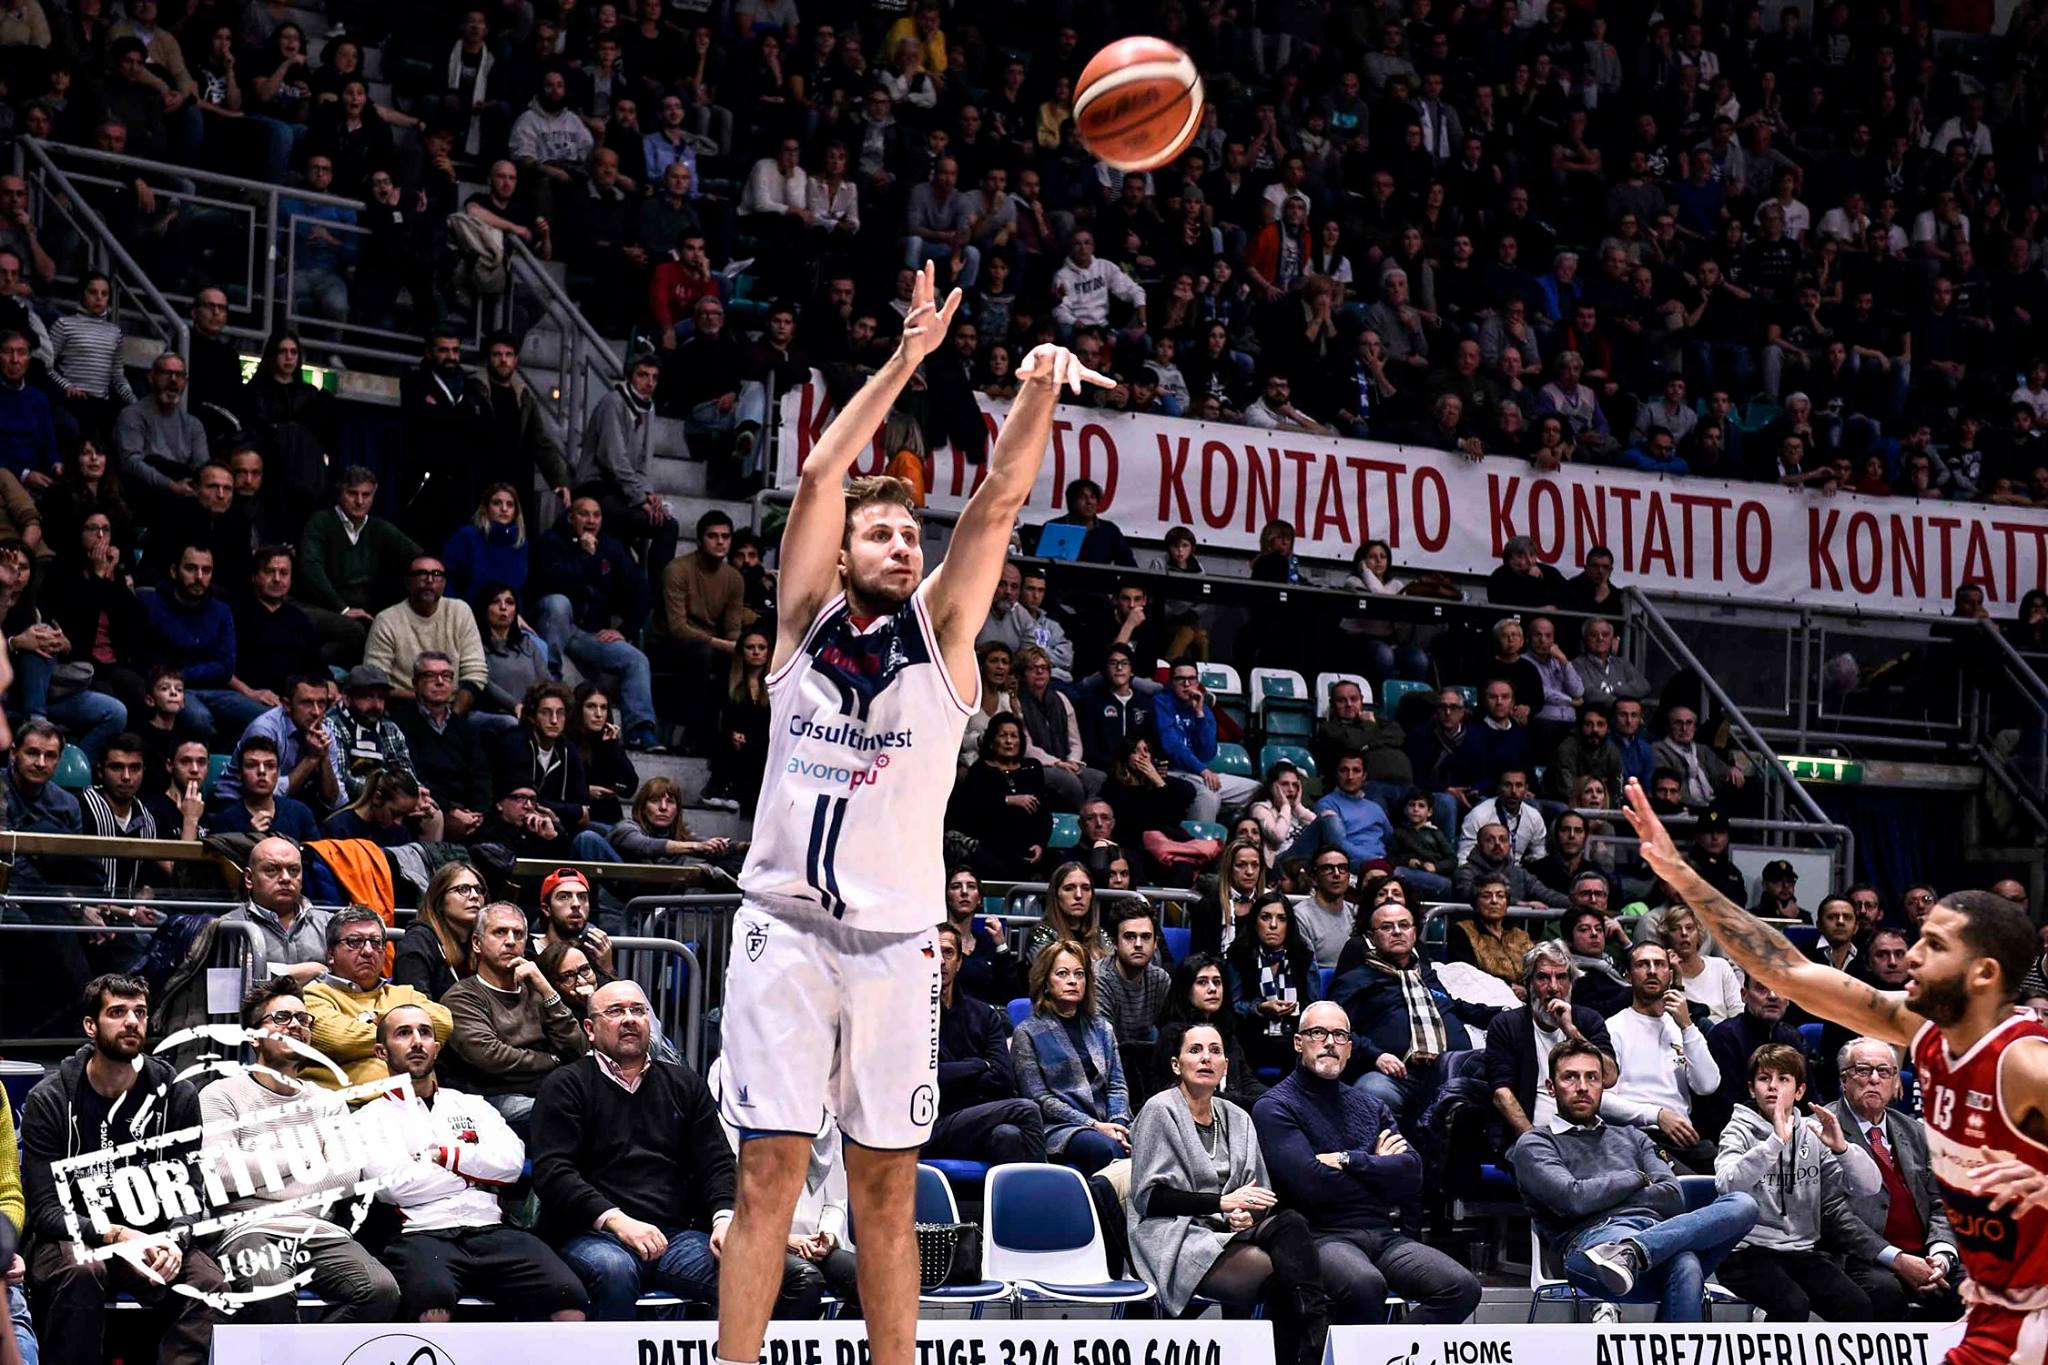 Fortitudo, il preview del match contro Trieste